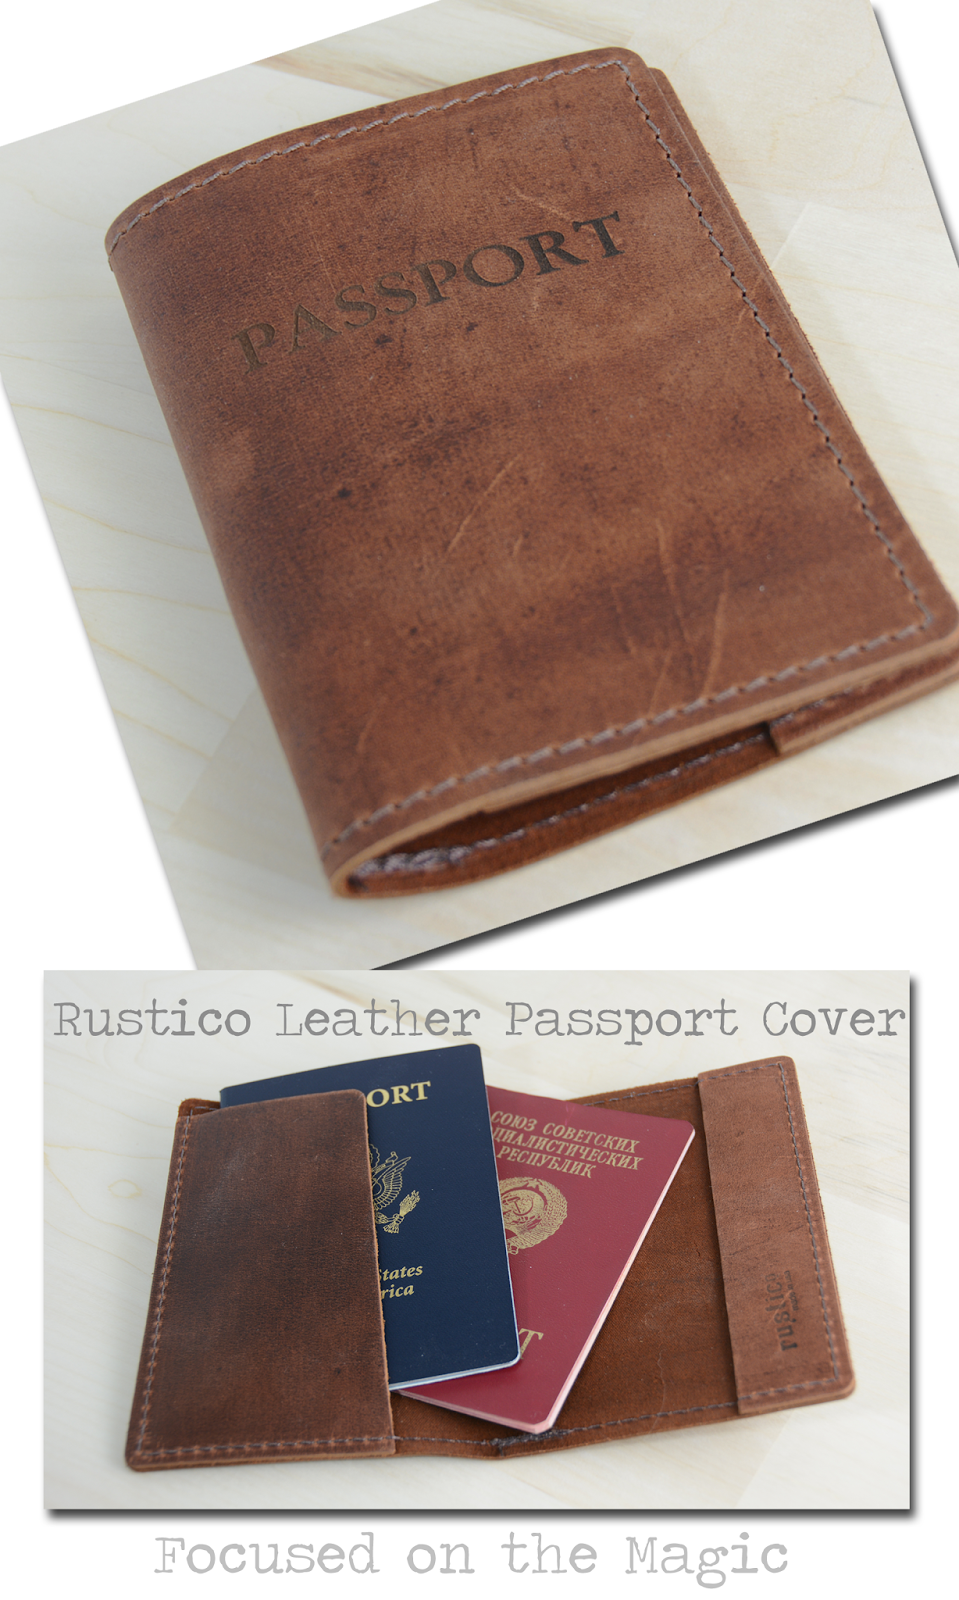 The Rustico leather Passport Cover